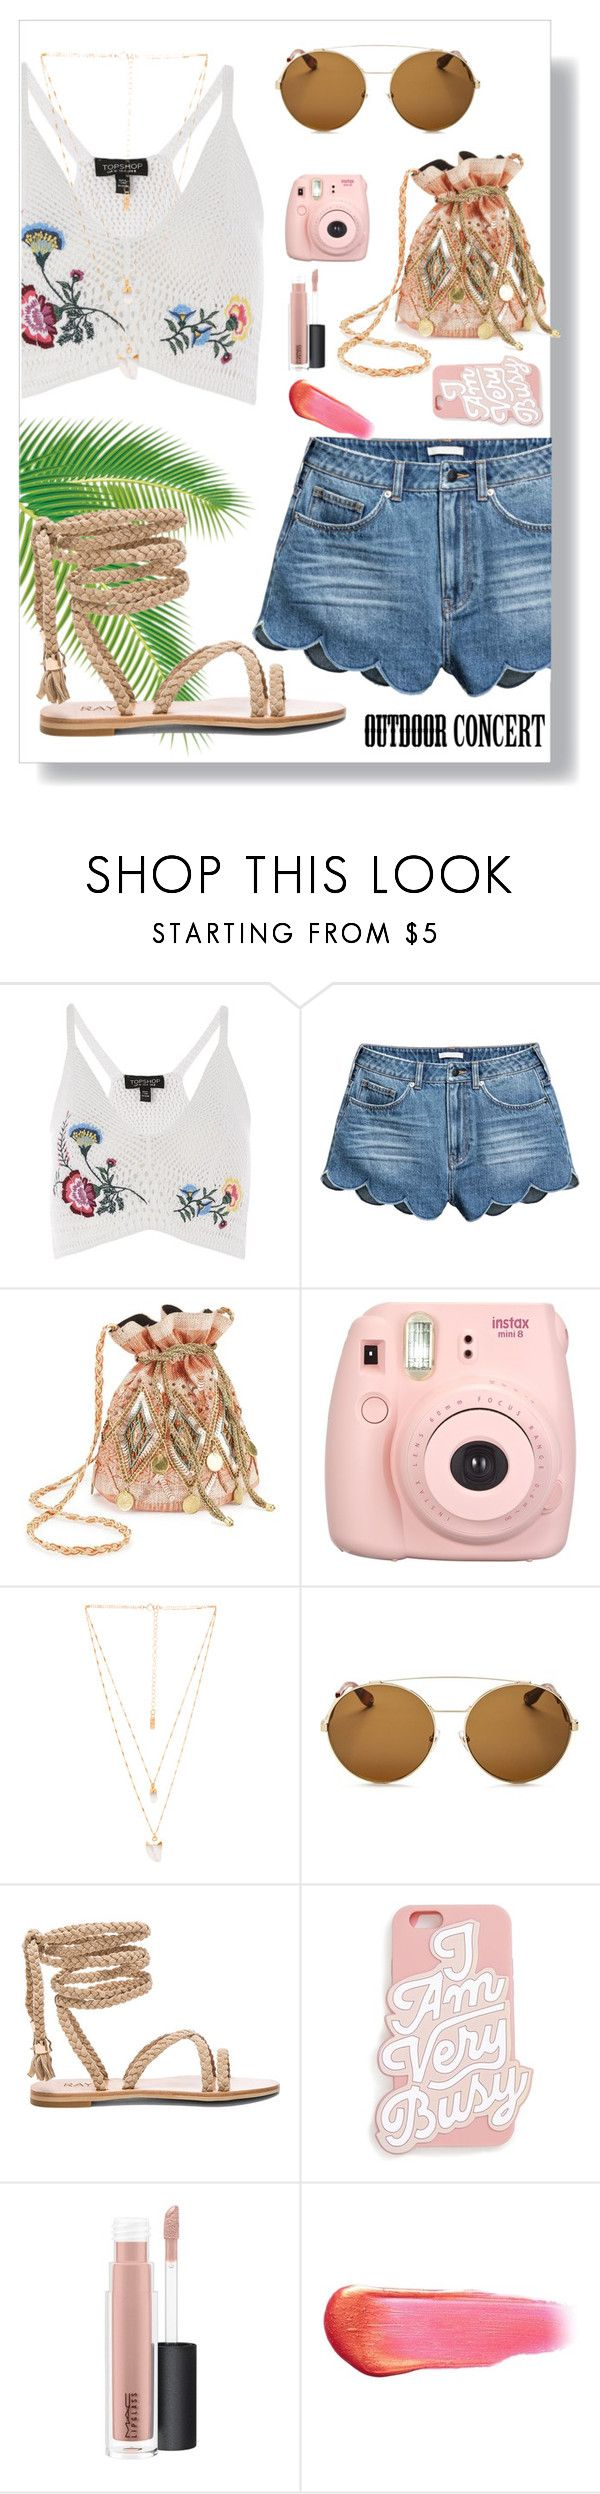 """""""Outside concert or Coachella? Can't decide"""" by yolopid ❤ liked on Polyvore featuring Topshop, Miss Selfridge, Fujifilm, Natalie B, Givenchy, ban.do, MAC Cosmetics, e.l.f., 60secondstyle and outdoorconcerts"""